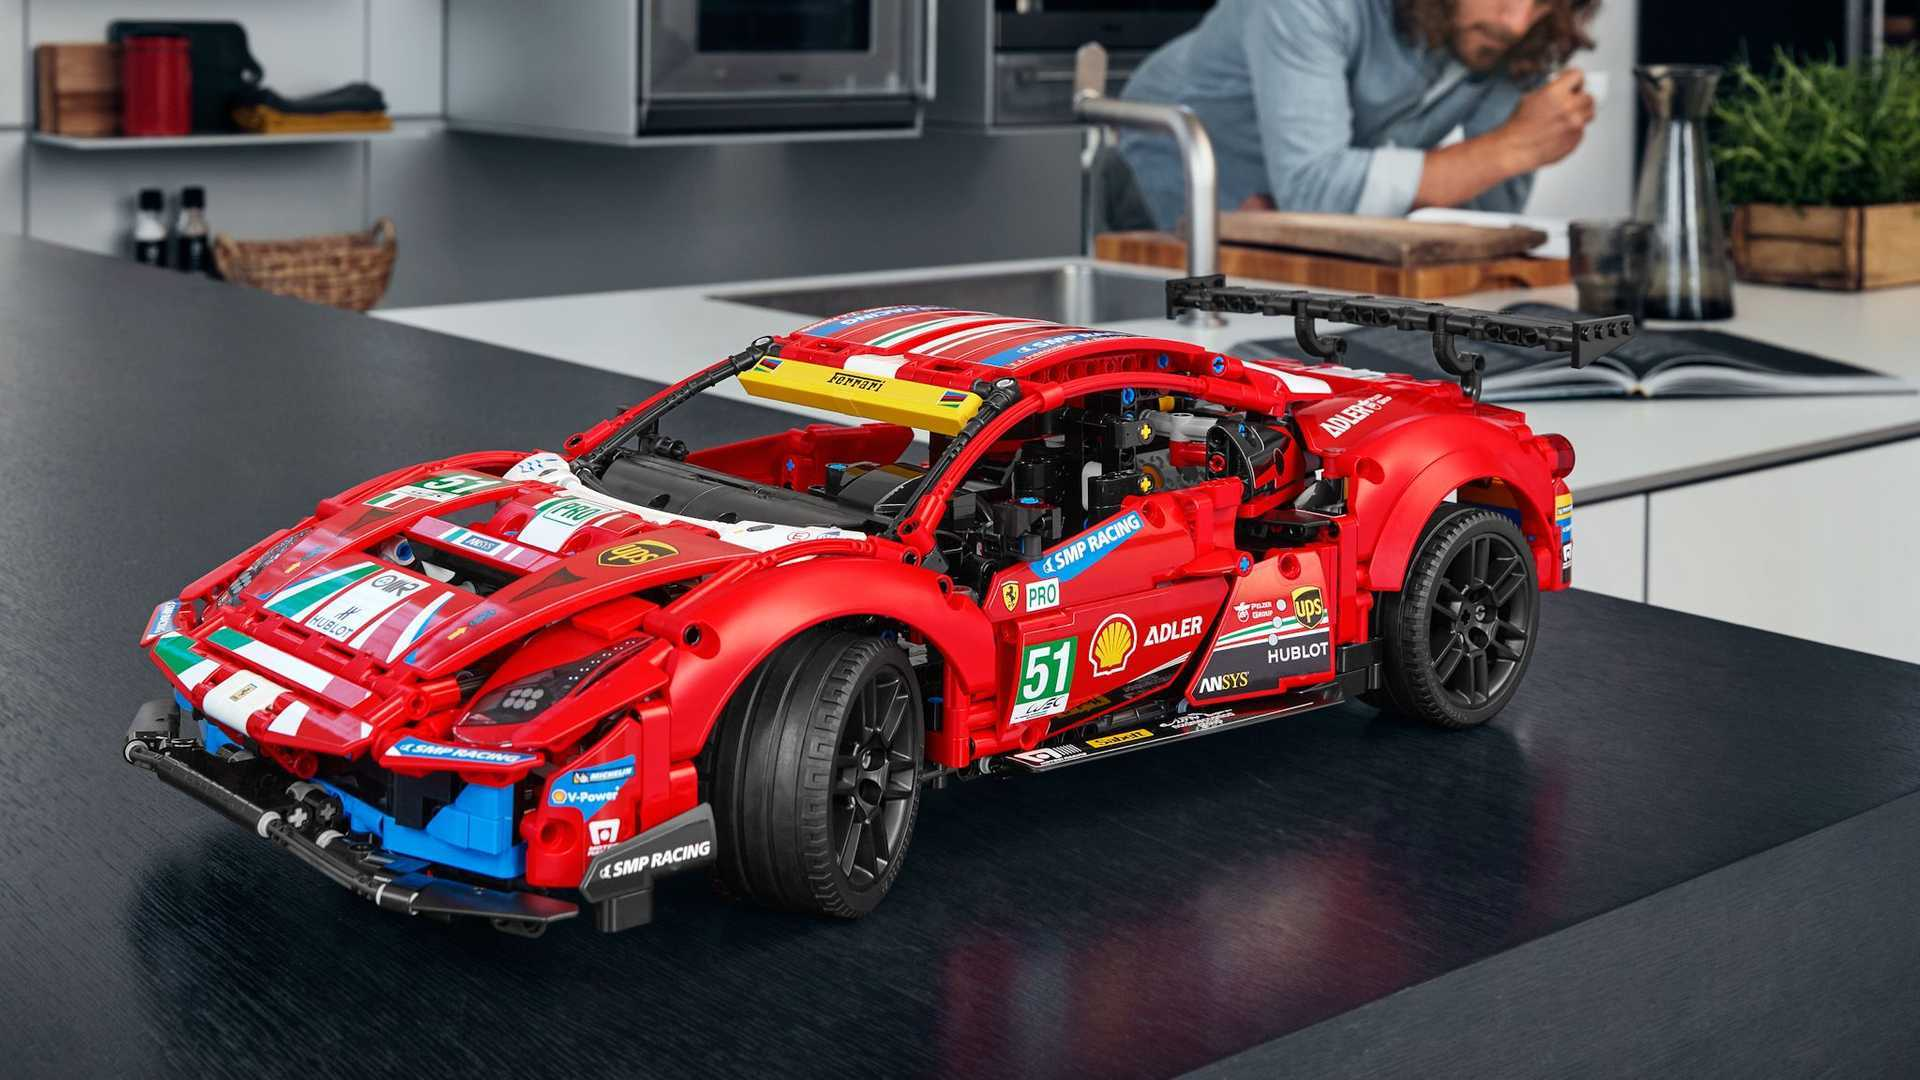 lego ferrari red color